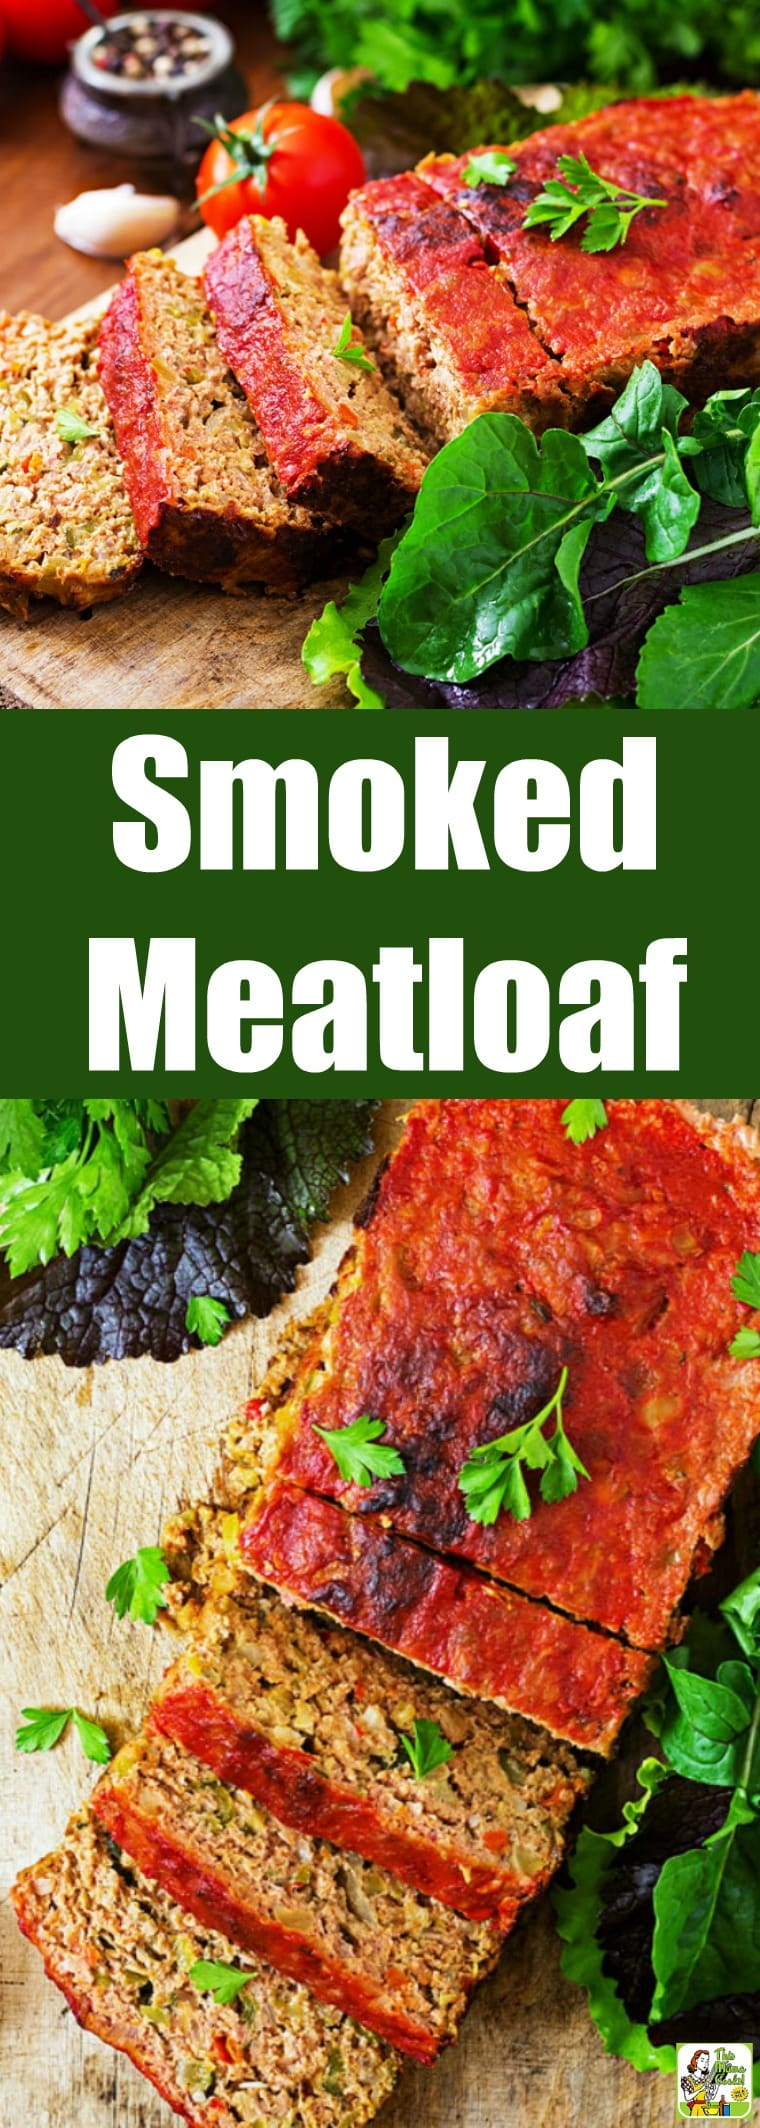 Add Smoked Meatloaf to your smoking and grilling repertoire. Super easy to make, delicious, and gluten free. #grill #grilling #grillrecipes #grillingrecipes #meatloaf #recipes #easy #recipeoftheday #glutenfree #easyrecipe #easyrecipes #glutenfreerecipes #dinner #easydinner #dinnerrecipes #dinnerideas